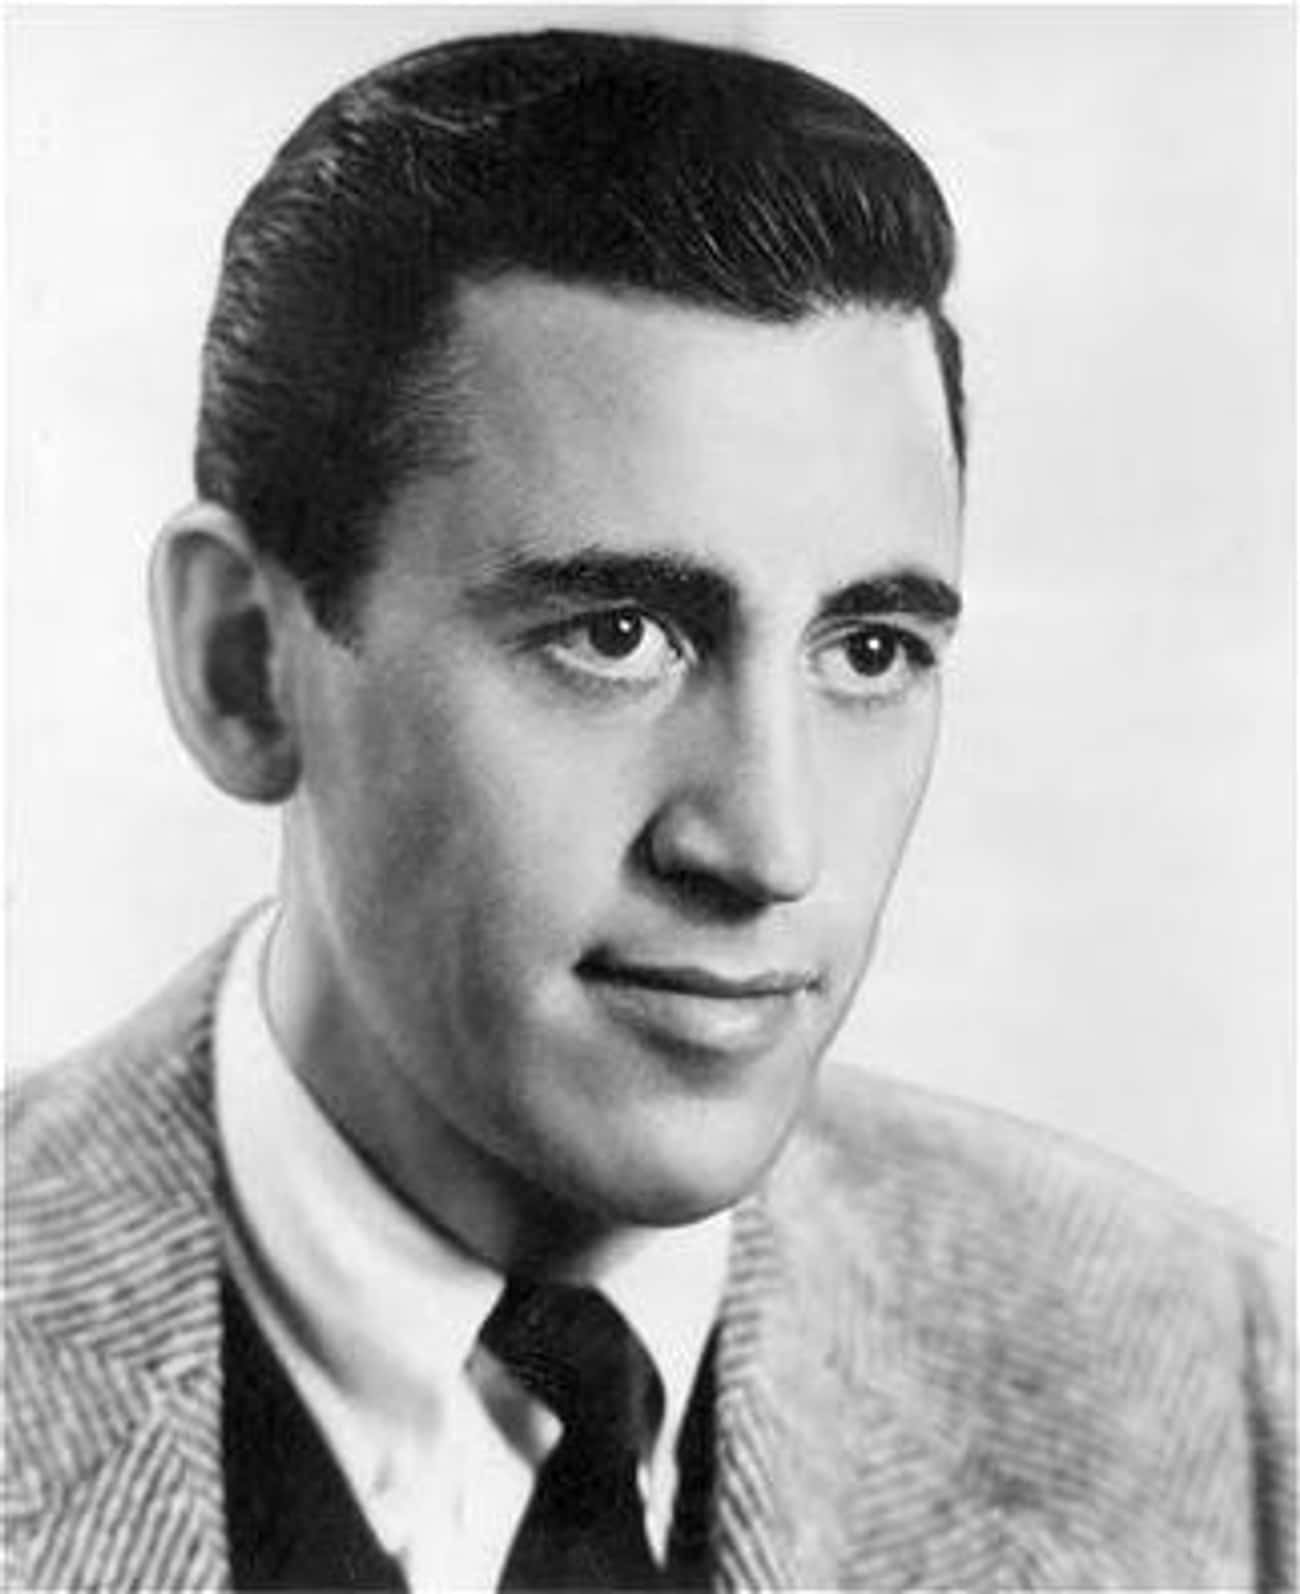 JD Salinger Was So Appalled by is listed (or ranked) 2 on the list 15 Authors Who Loathed the Movie Adaptations of Their Books